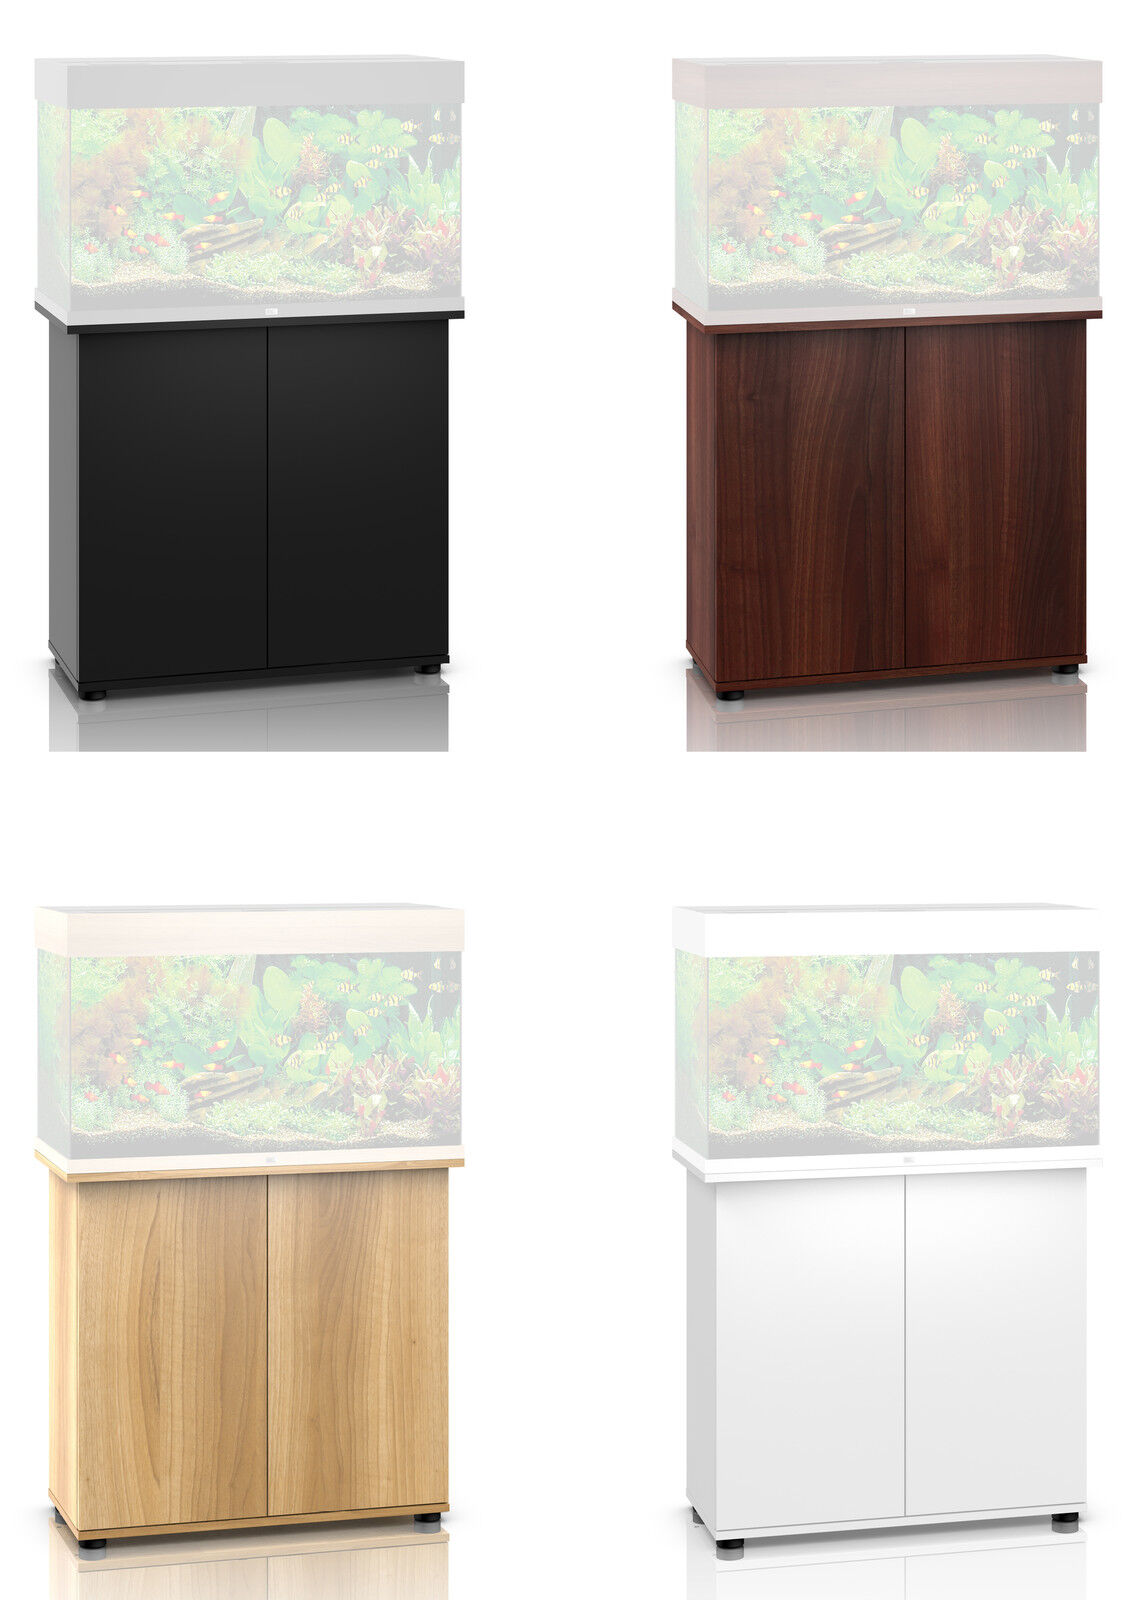 aquarium unterschrank 80 test vergleich aquarium unterschrank 80 g nstig kaufen. Black Bedroom Furniture Sets. Home Design Ideas